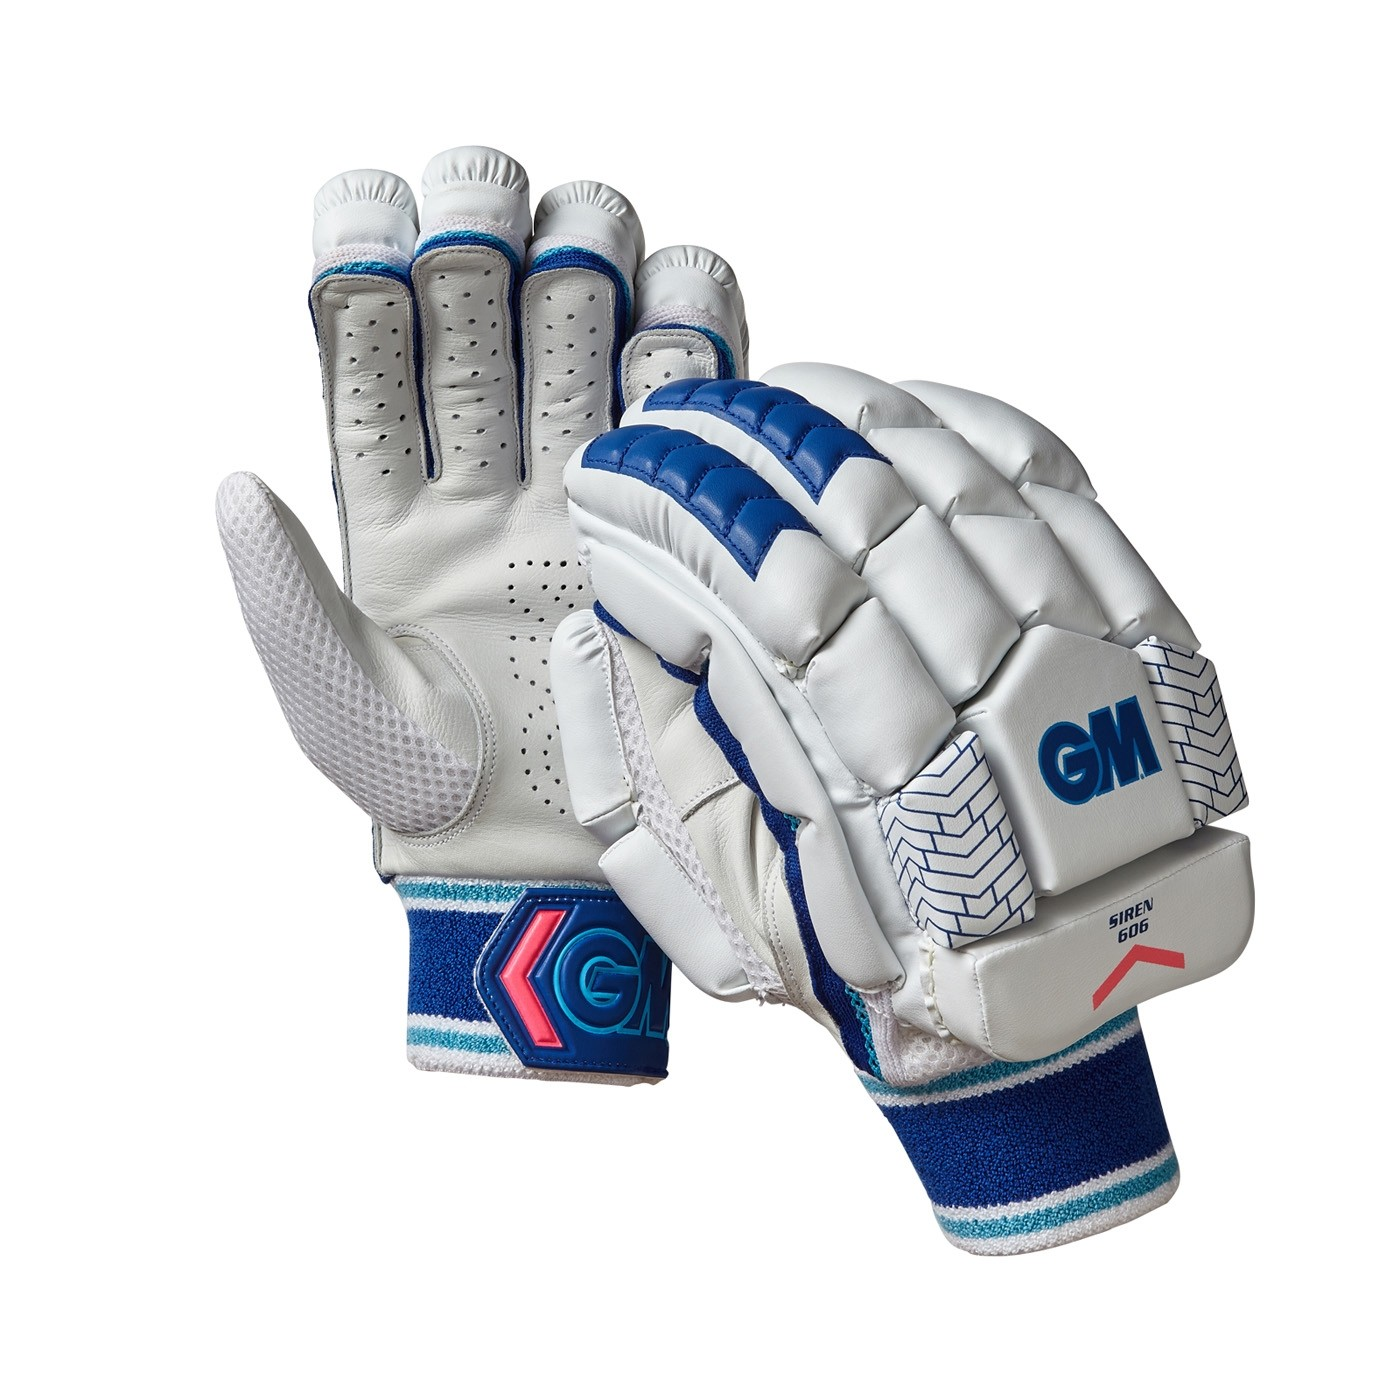 2020 Gunn and Moore Siren 606 Batting Gloves